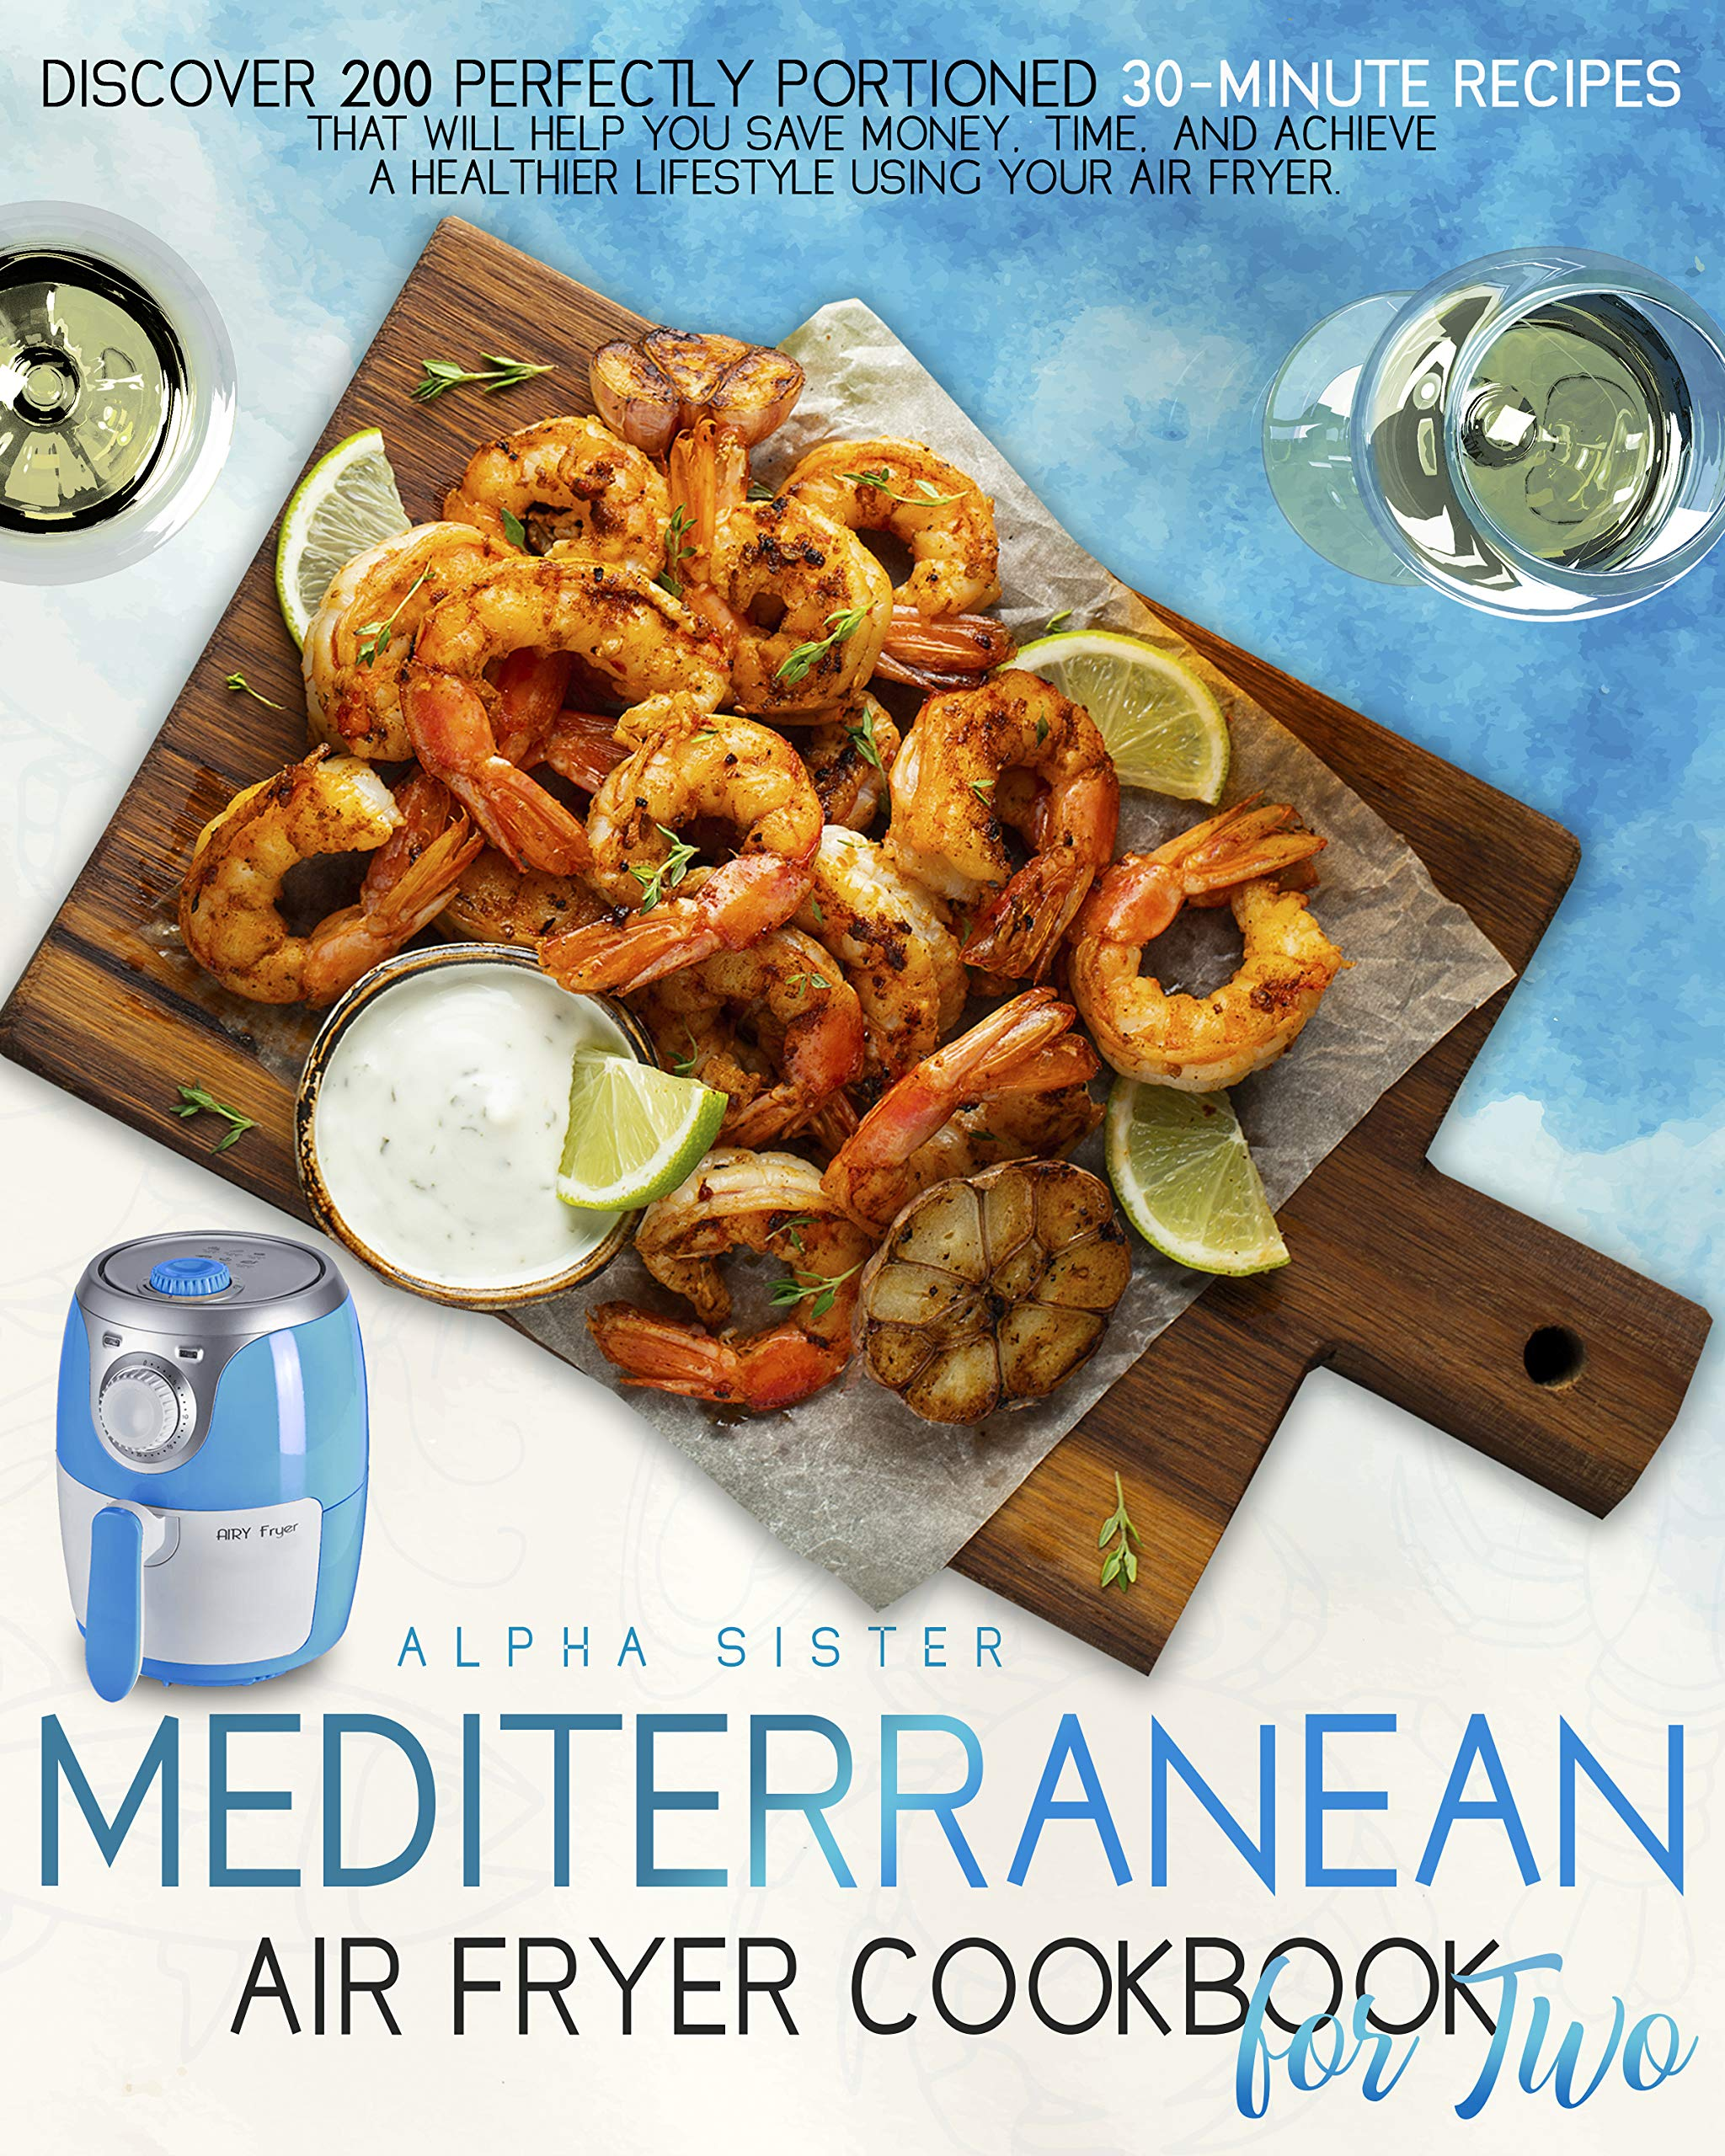 Mediterranean Air Fryer Cookbook For Two: Discover 200 Perfectly Portioned 30-Minute Recipes That Will Help You Save Money, Time, And Achieve A Healthier Lifestyle Using Your Air Fryer